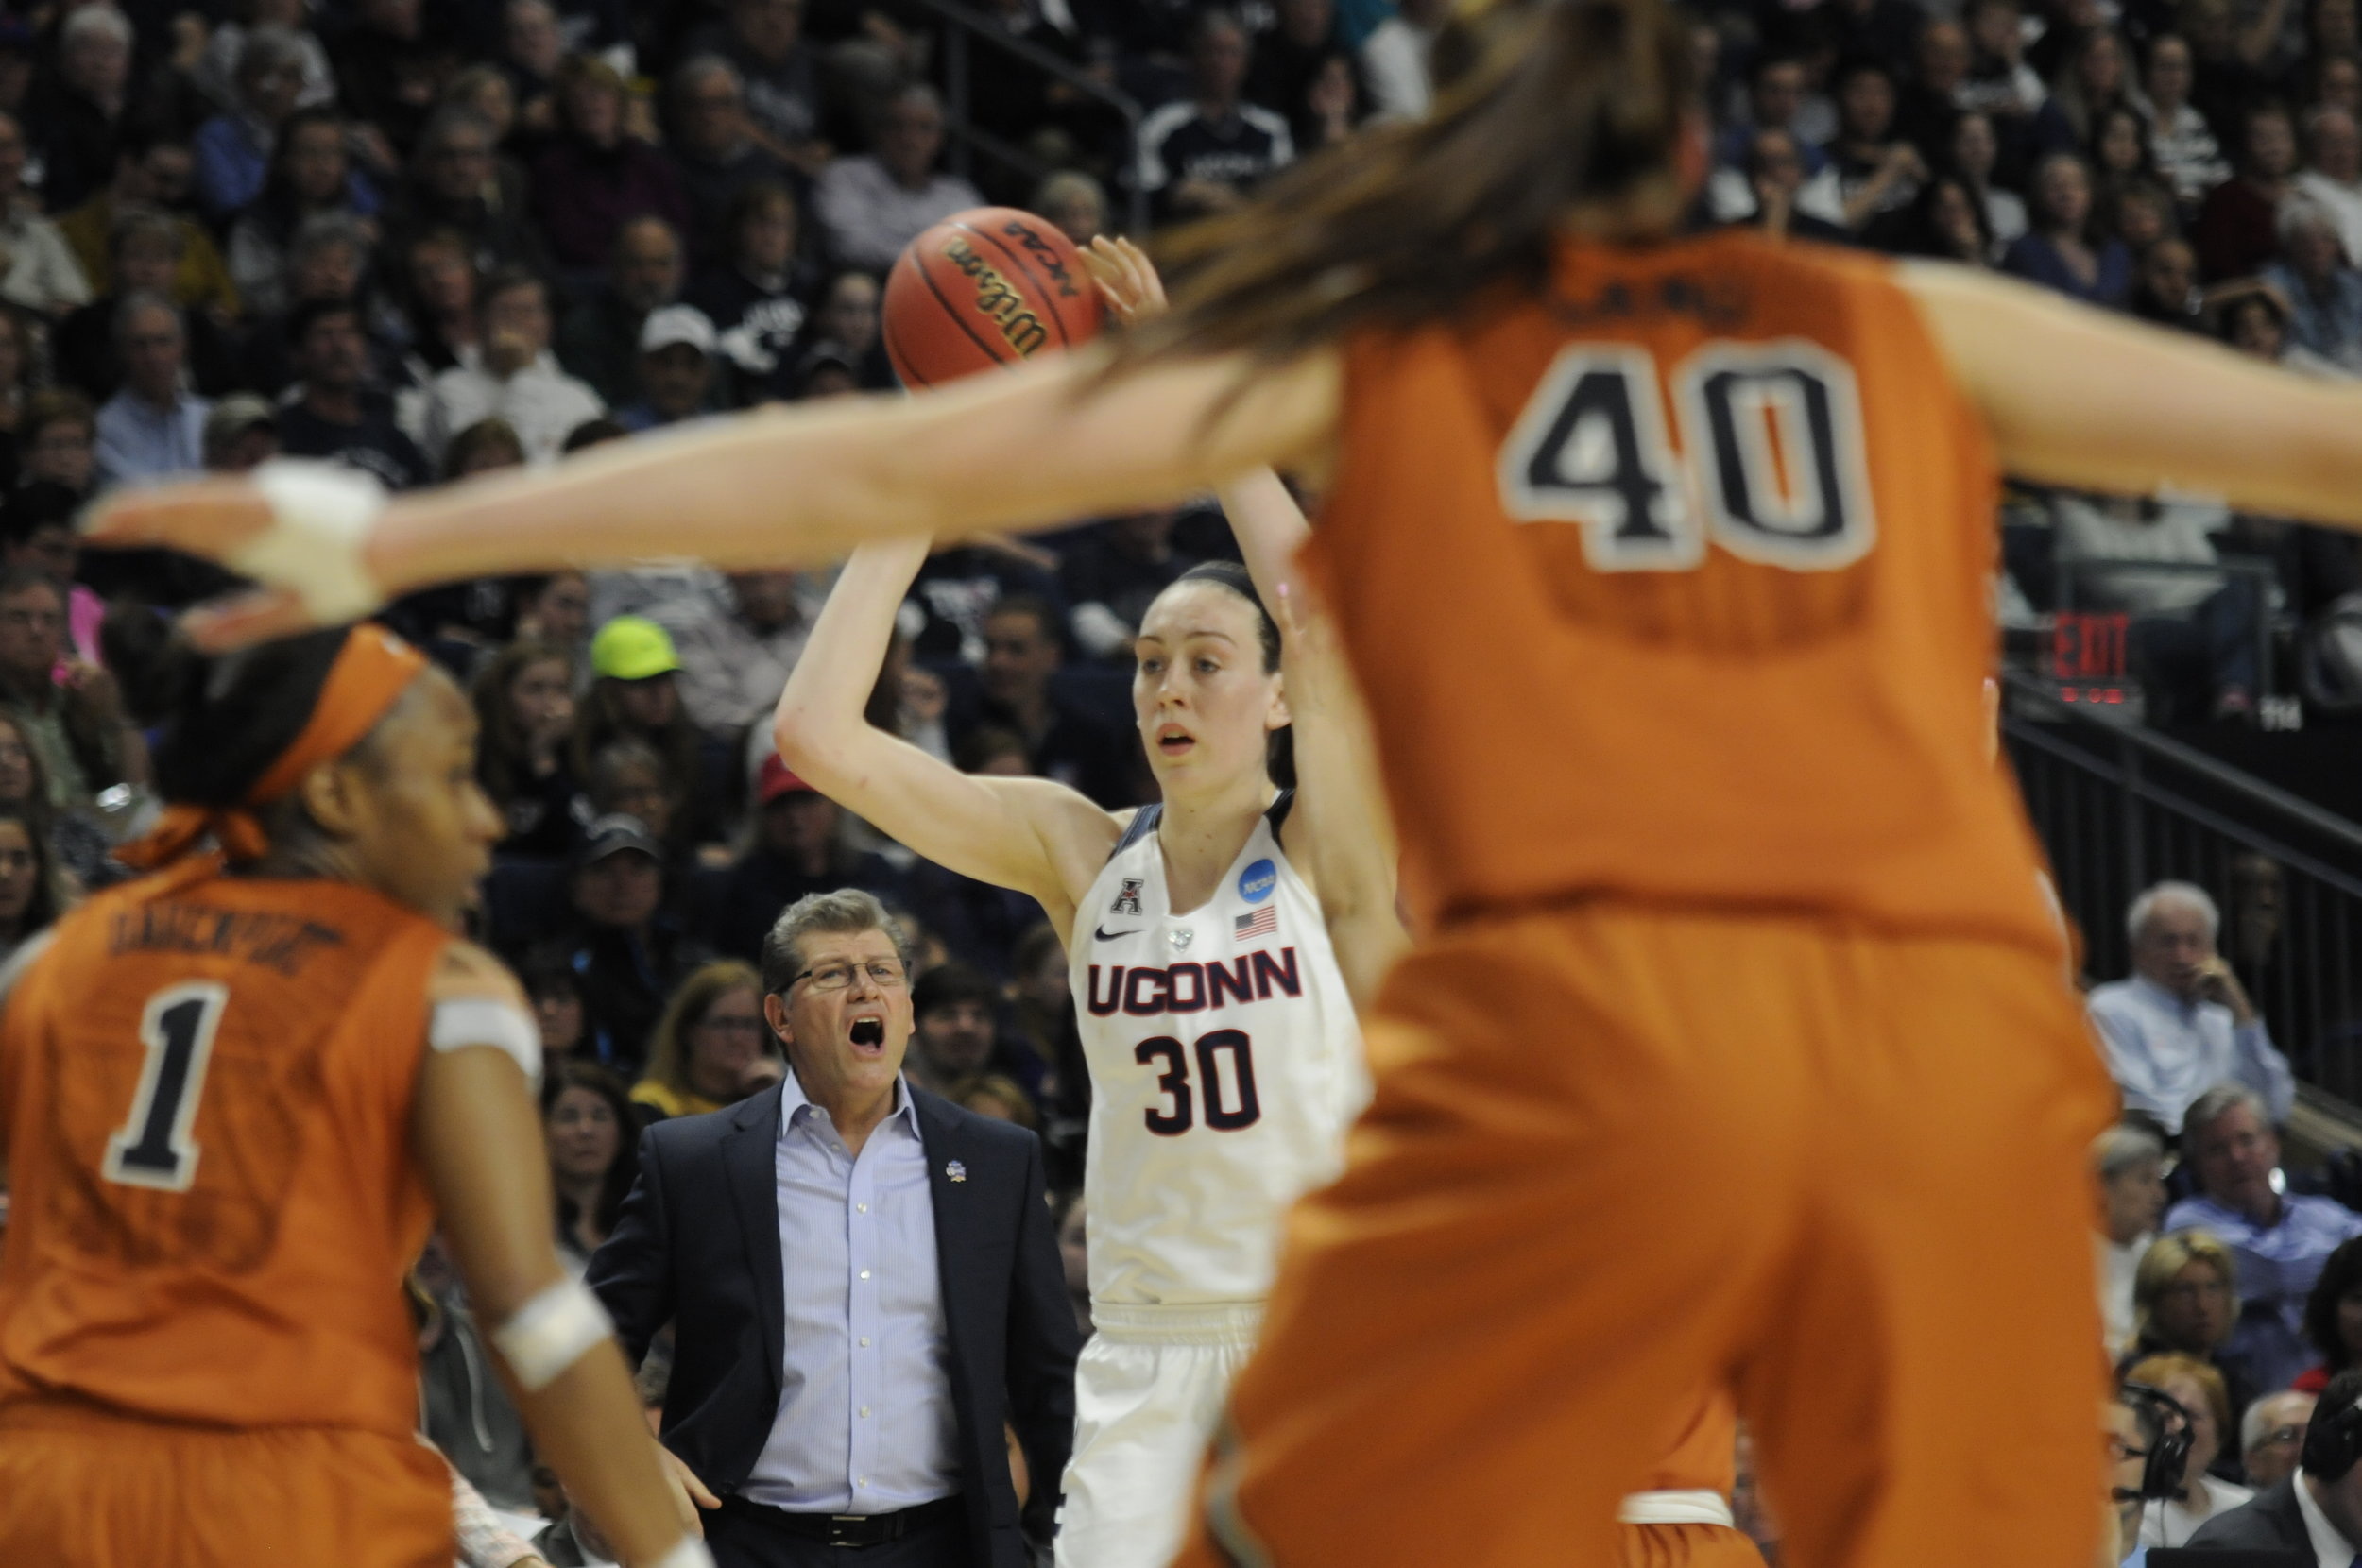 Connecticut forward Breanna Stewart (30) looks to pass the ball as head coach Geno Aurimemma calls out directions during an NCAA tournament quarterfinal game against Texas on March 28, 2016.Stewart finished with 21 points, 13 rebounds,5 assists, 3 blocks, and 3 steals in UConn's 86-65 win.